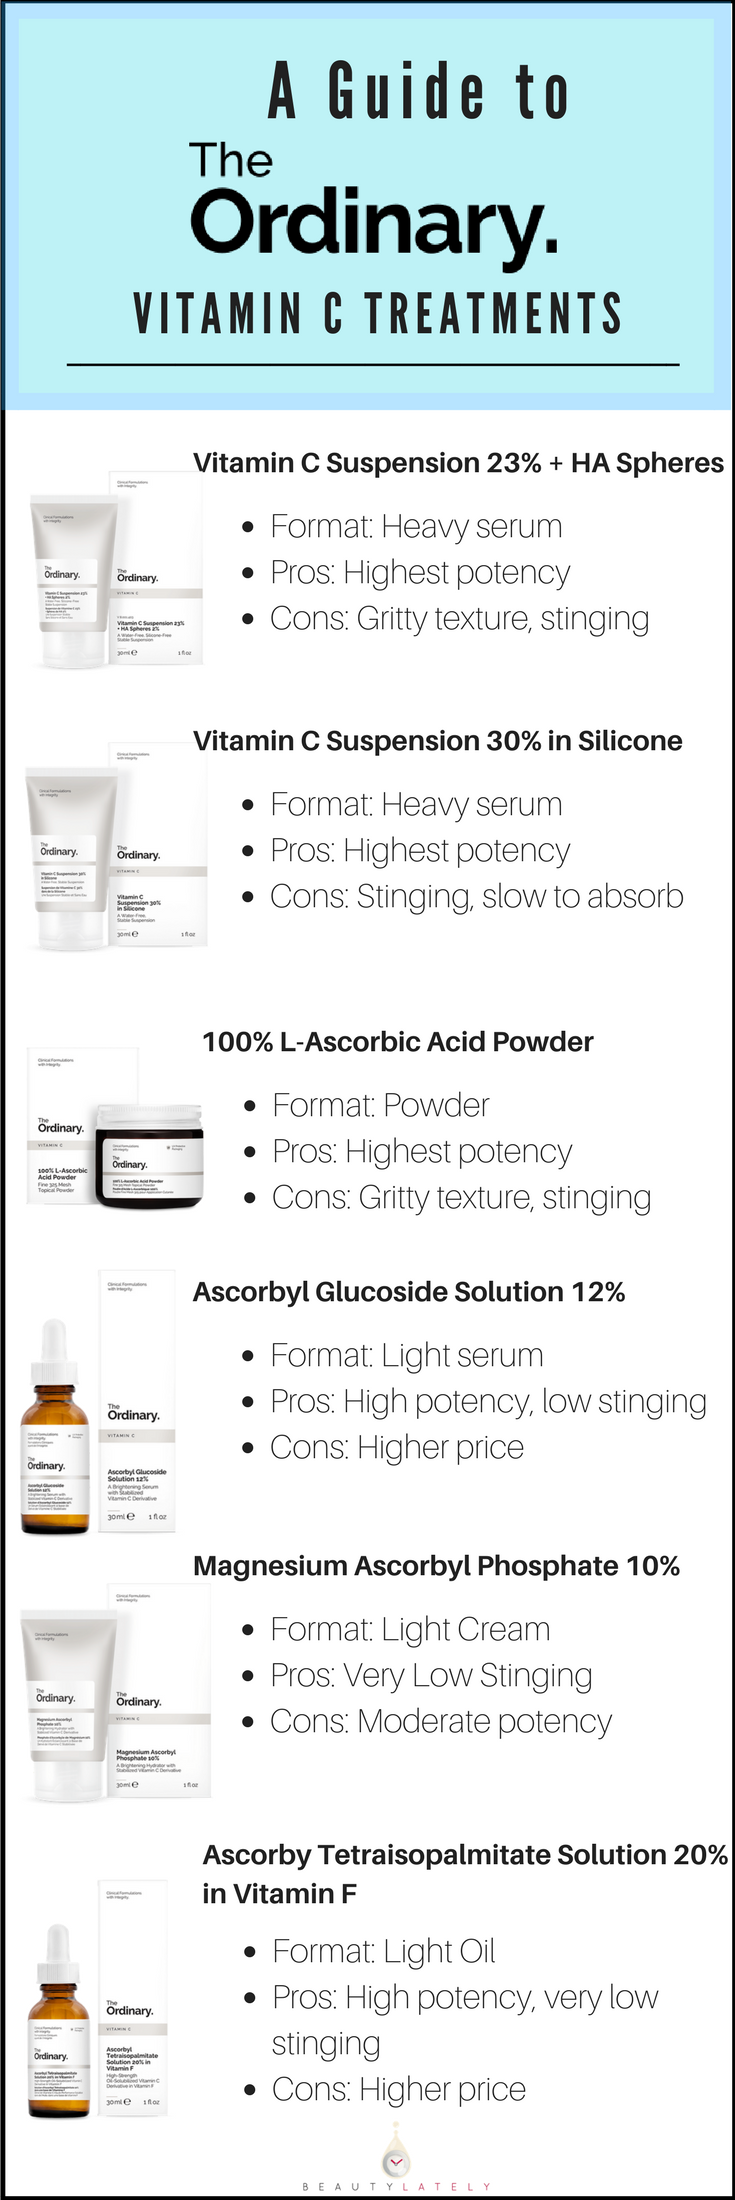 The Ordinary Dark Spot Product Treatment Guide